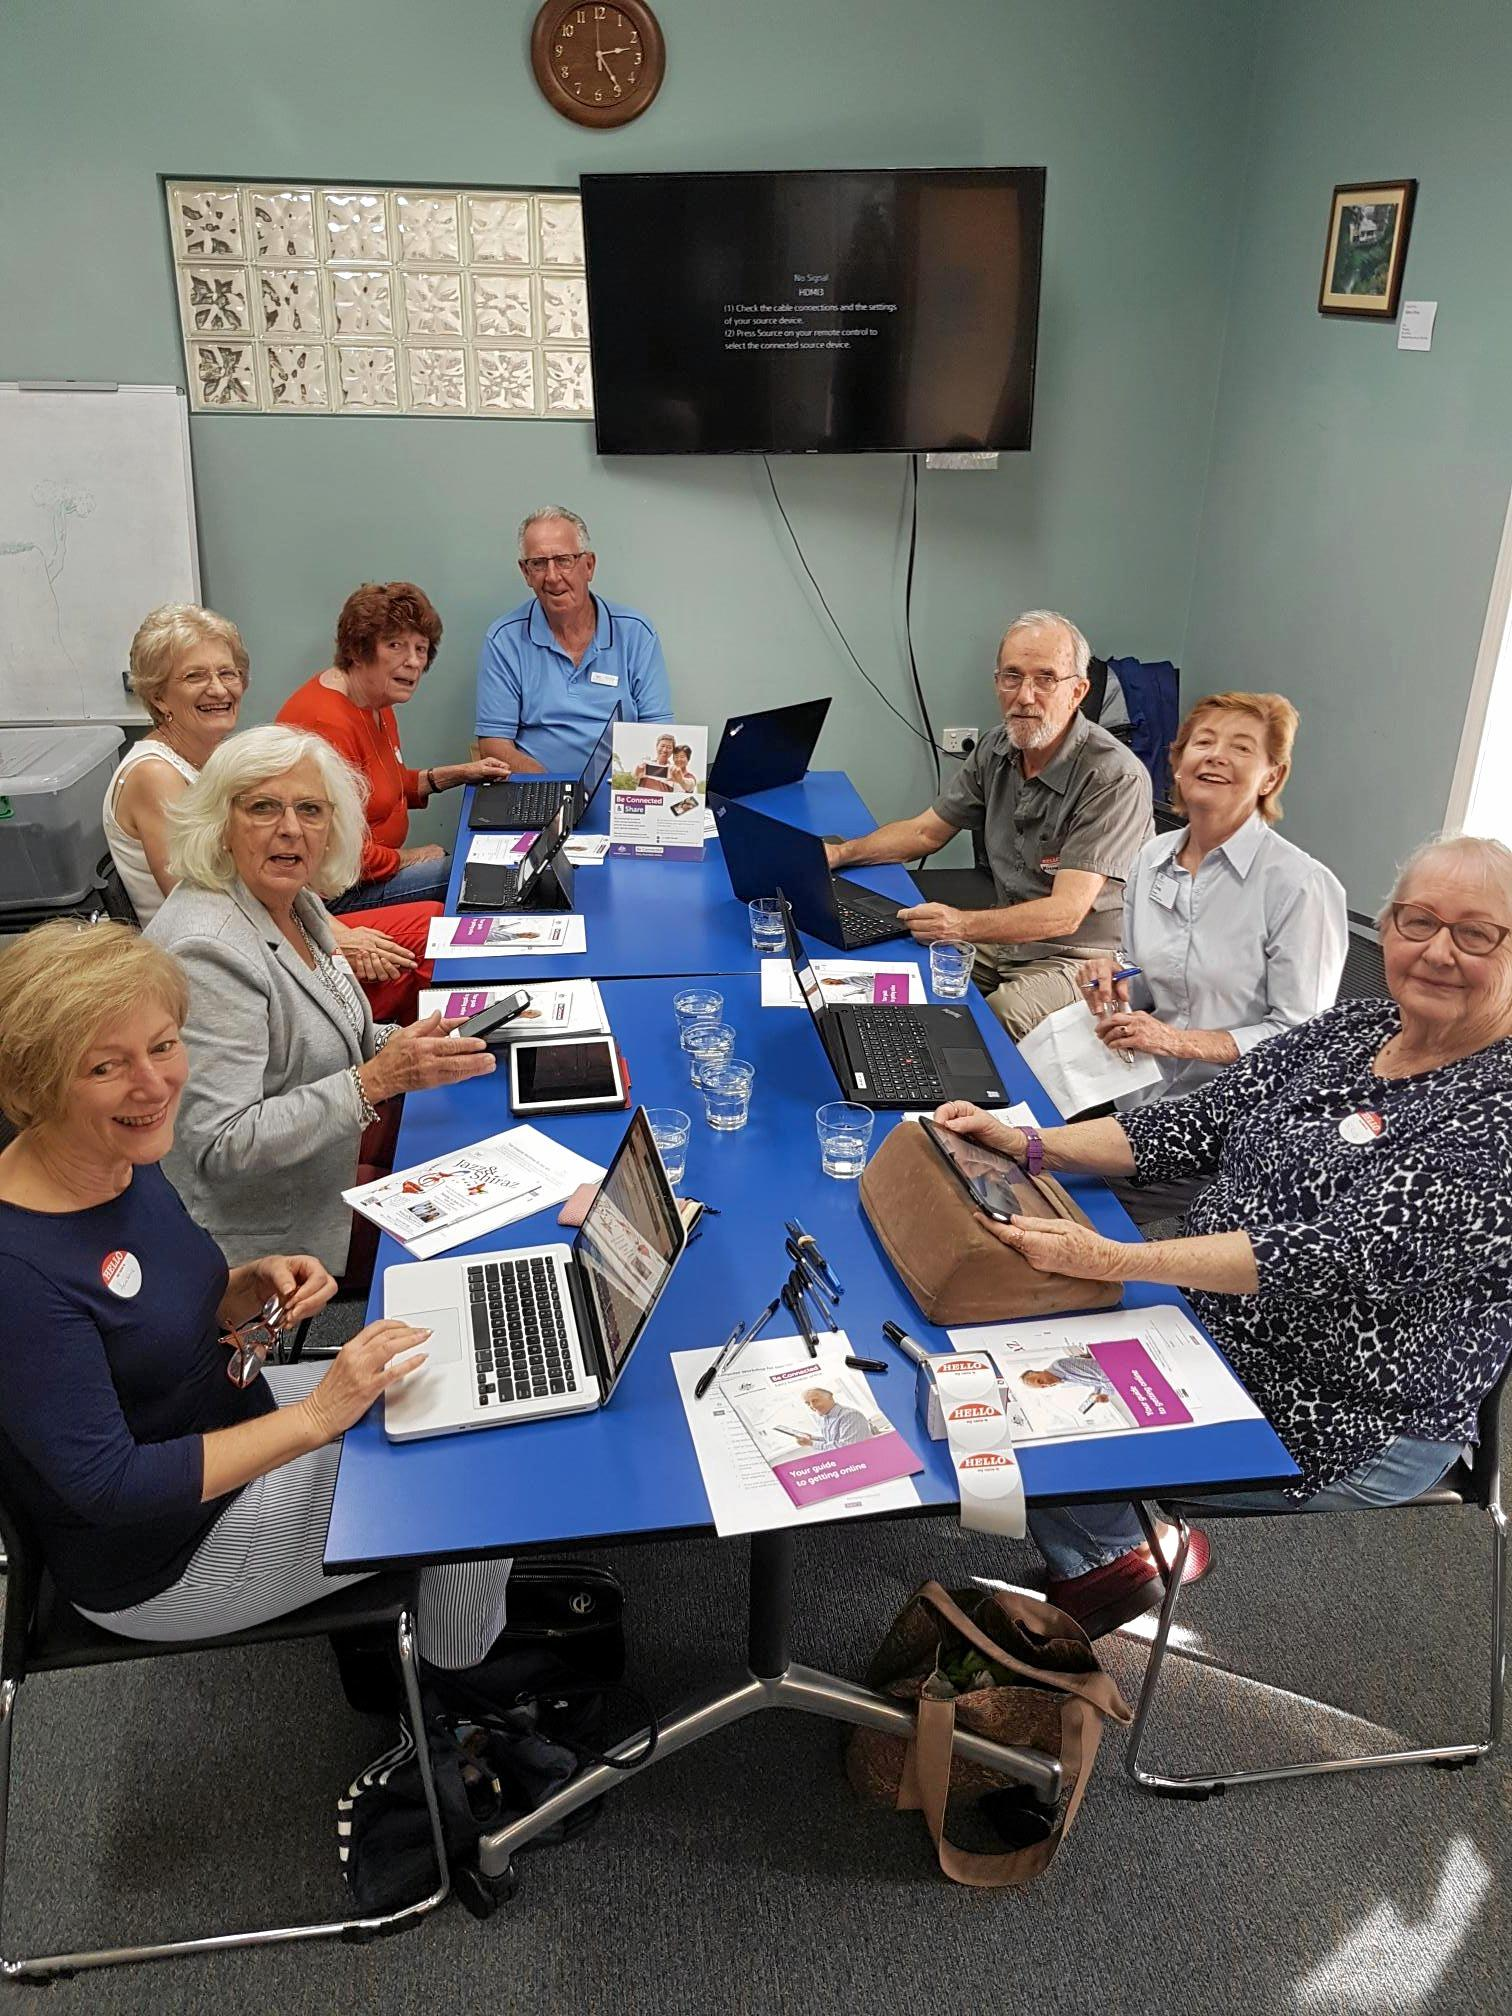 TECH-SAVVY SENIORS: Be Connected aims to empower everyone to use the internet and everyday technology to thrive in our digital world.